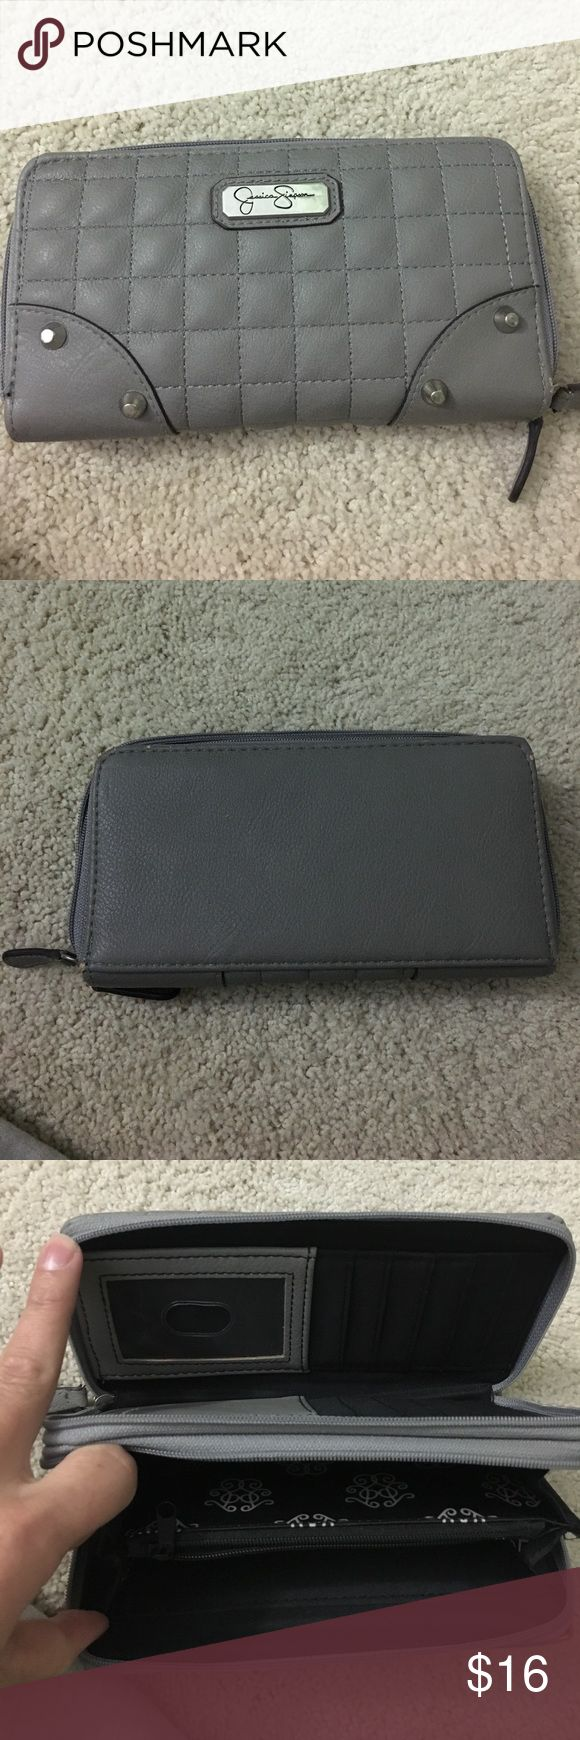 Gray Jessica Simpson wallet Gray Jessica Simpson wallet. Gently used. Smoke and pet free home. Jessica Simpson Bags Wallets